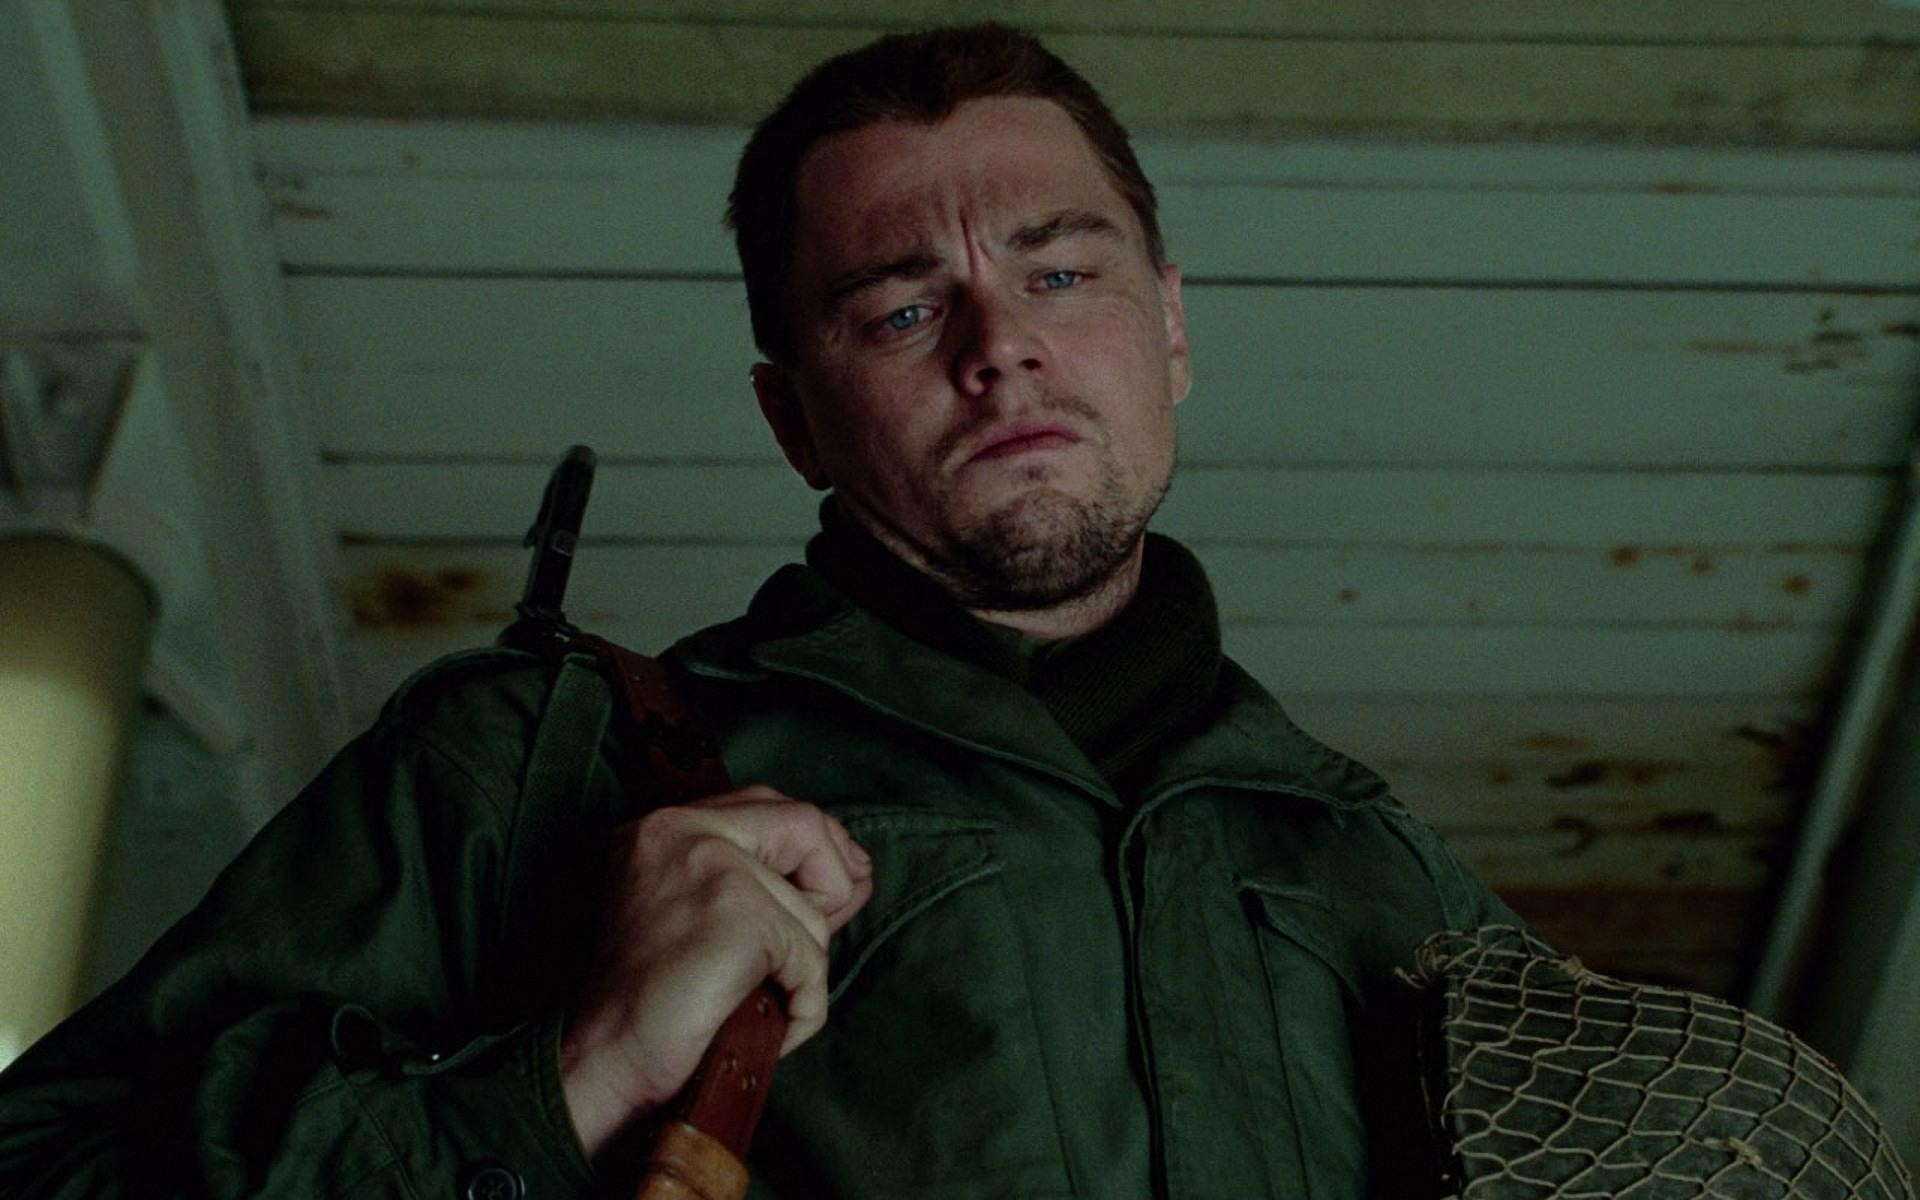 shutter island film critique Shutter island in his first dramatic feature since he won oscars and box-office  esteem with the departed, martin scorsese turns denis.